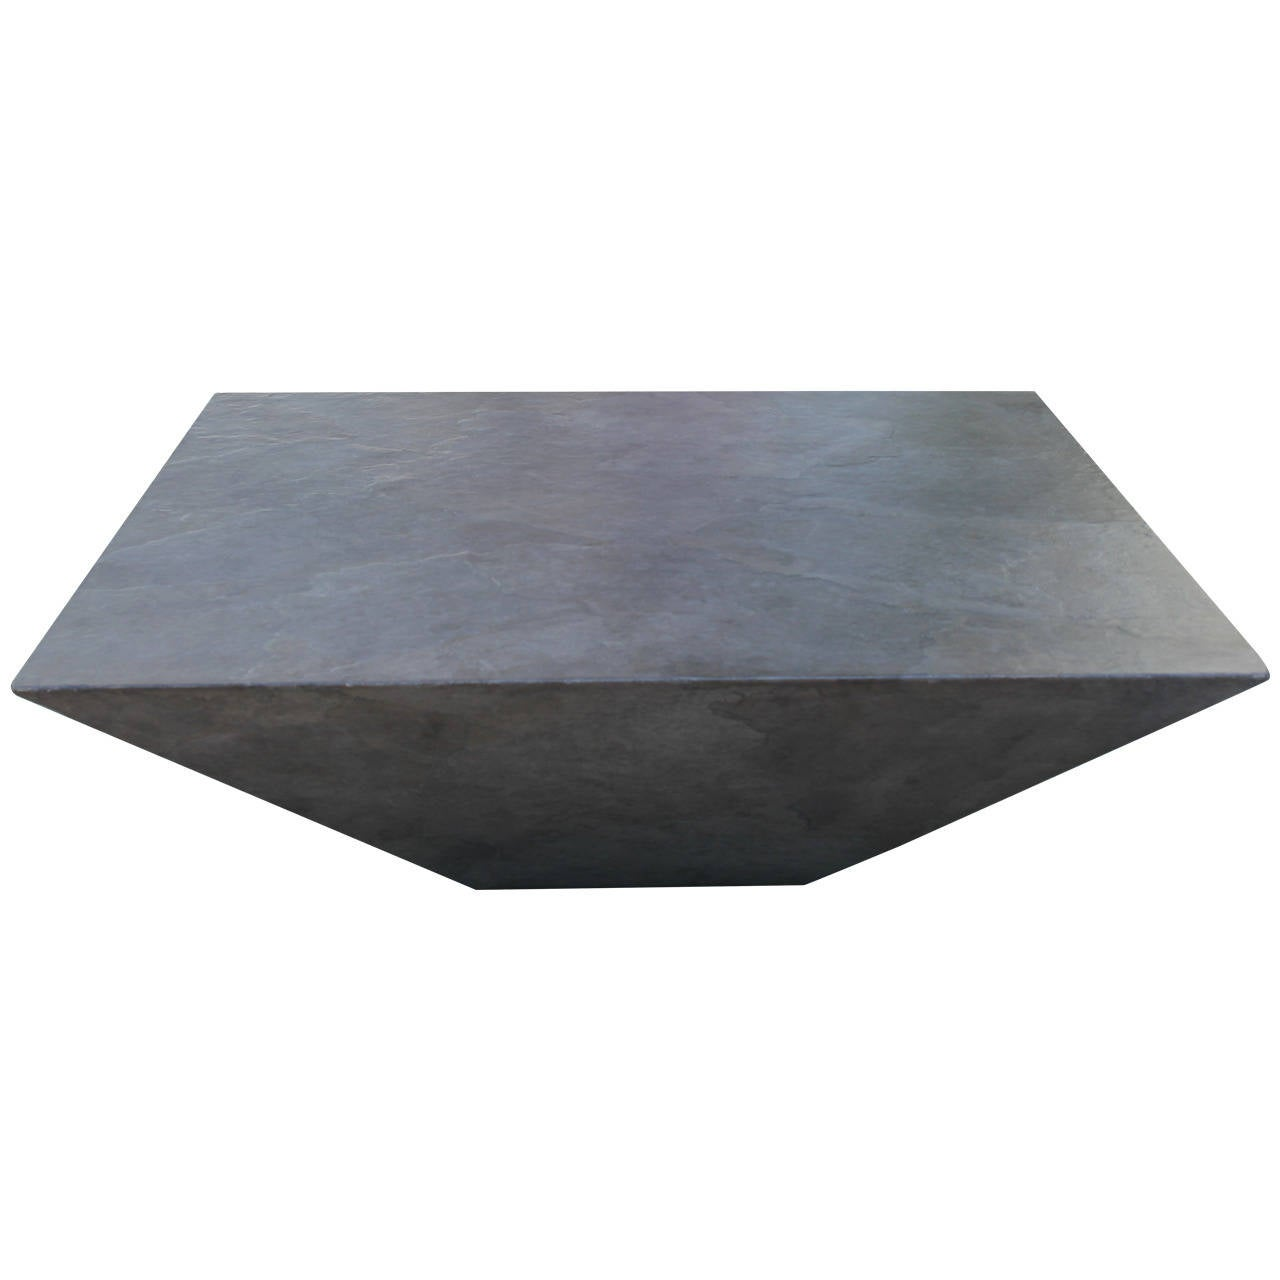 Slate And Glass Coffee Table For Sale: Midcentury Geometric Faux Slate Coffee Table At 1stdibs